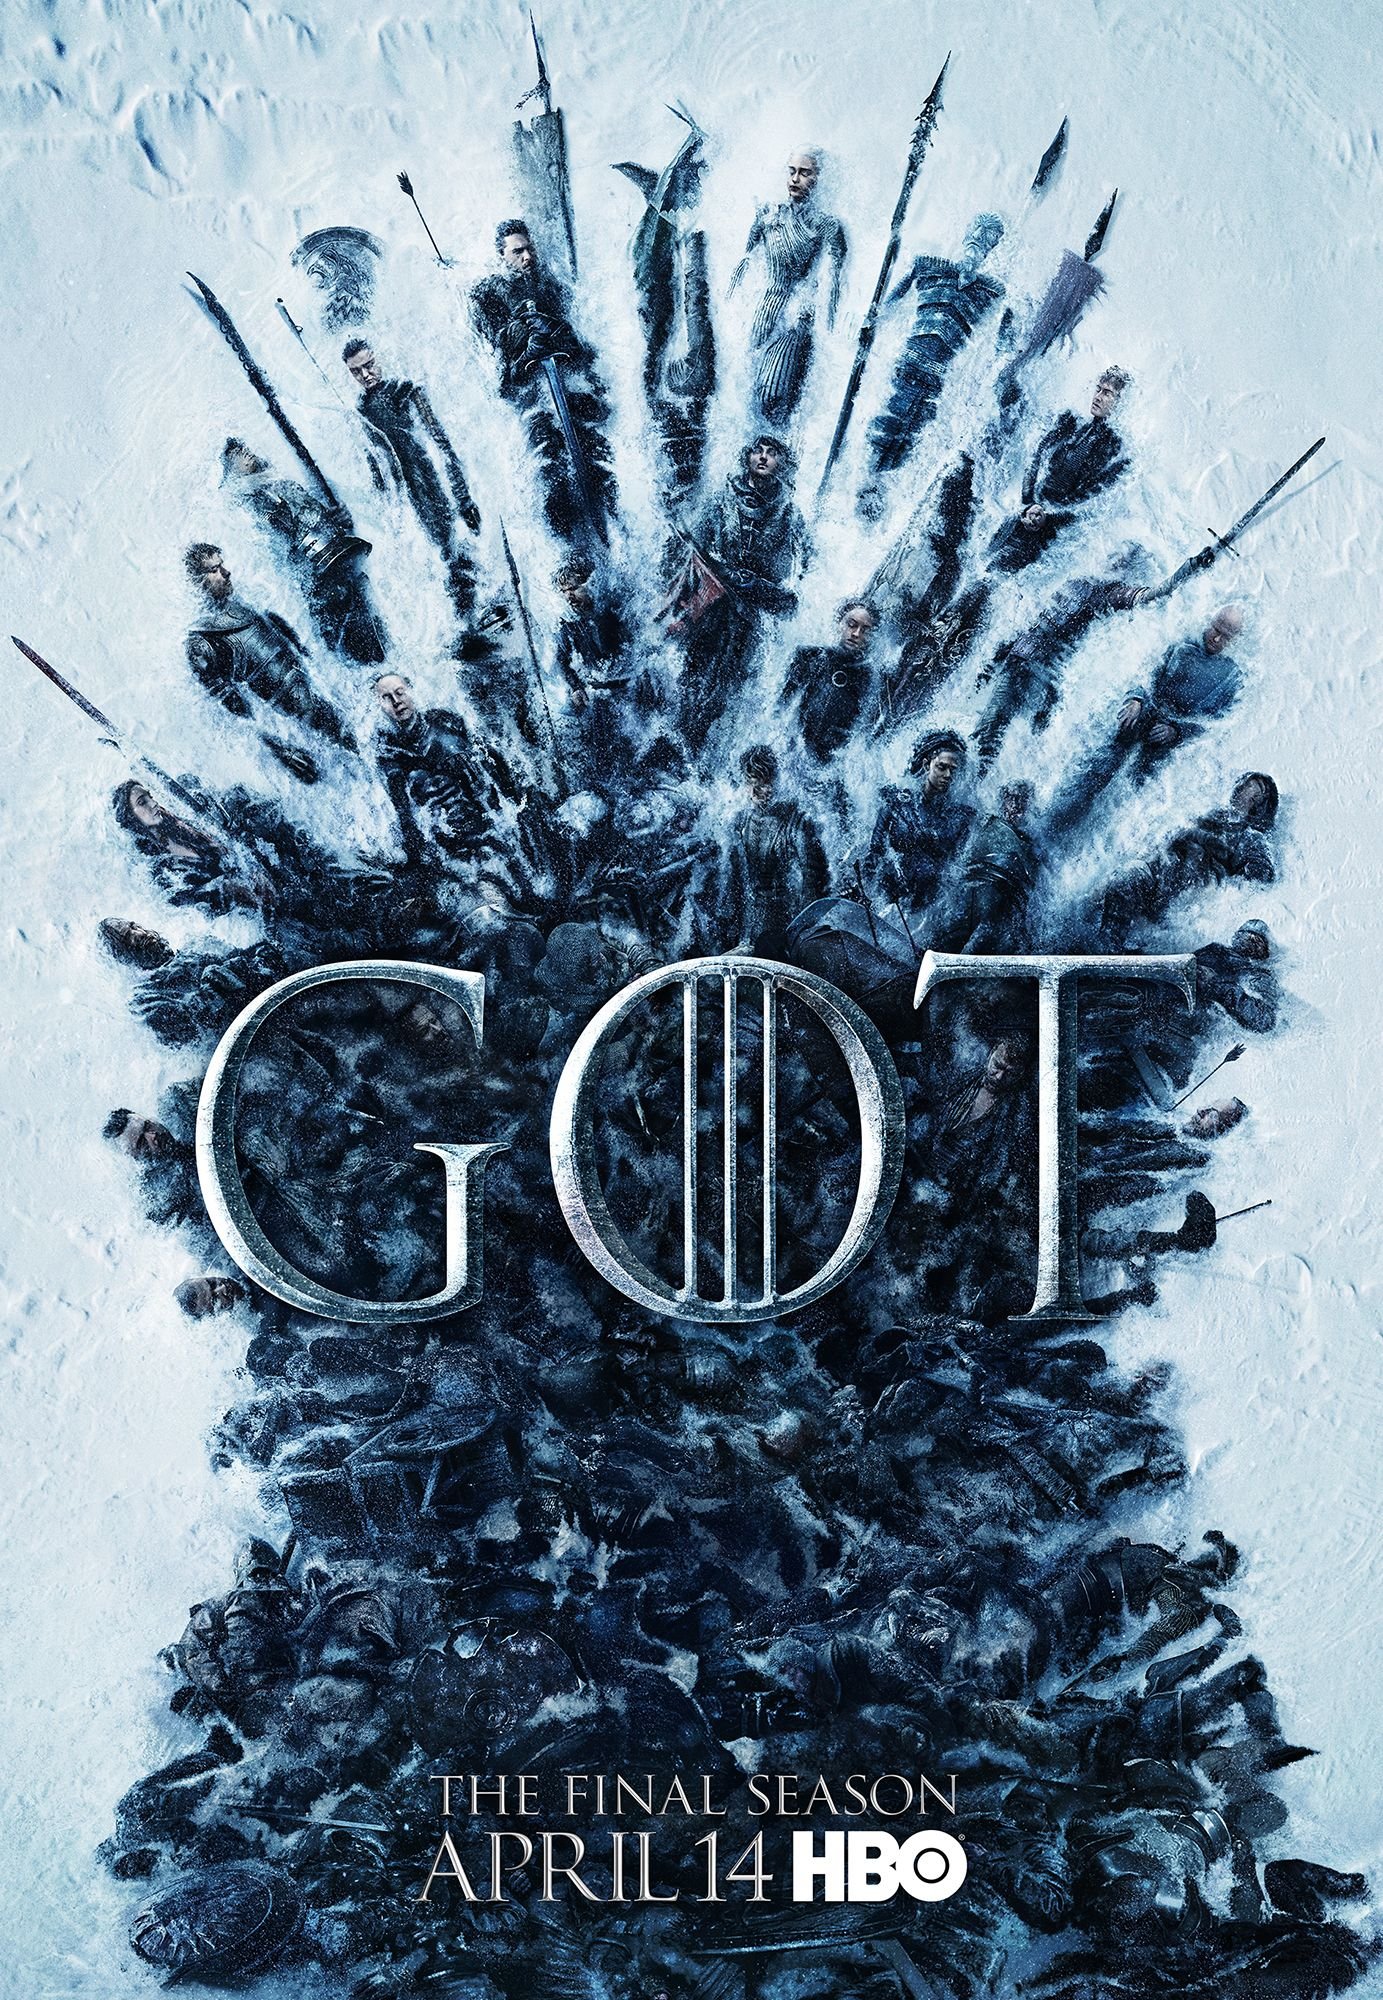 Game Of Thrones Season 8 Air Date Cast News And Spoilers All About Got Season 8